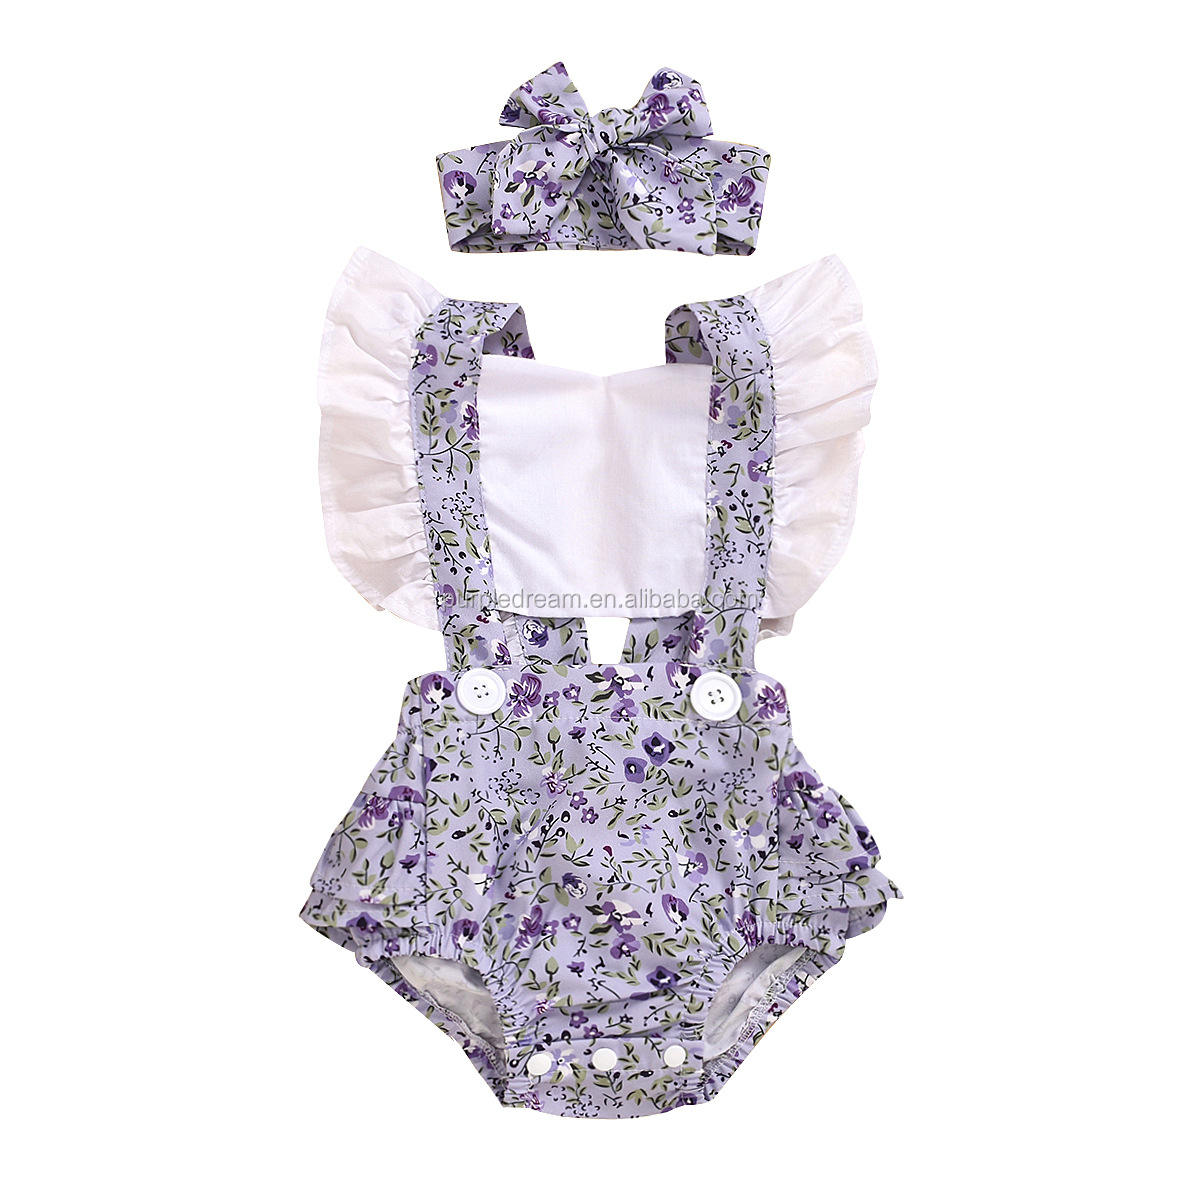 Boutique Baby Girl Rompers Sweet Floral Kid's Clothing Amazon Hot Selling Infant Bodysuit